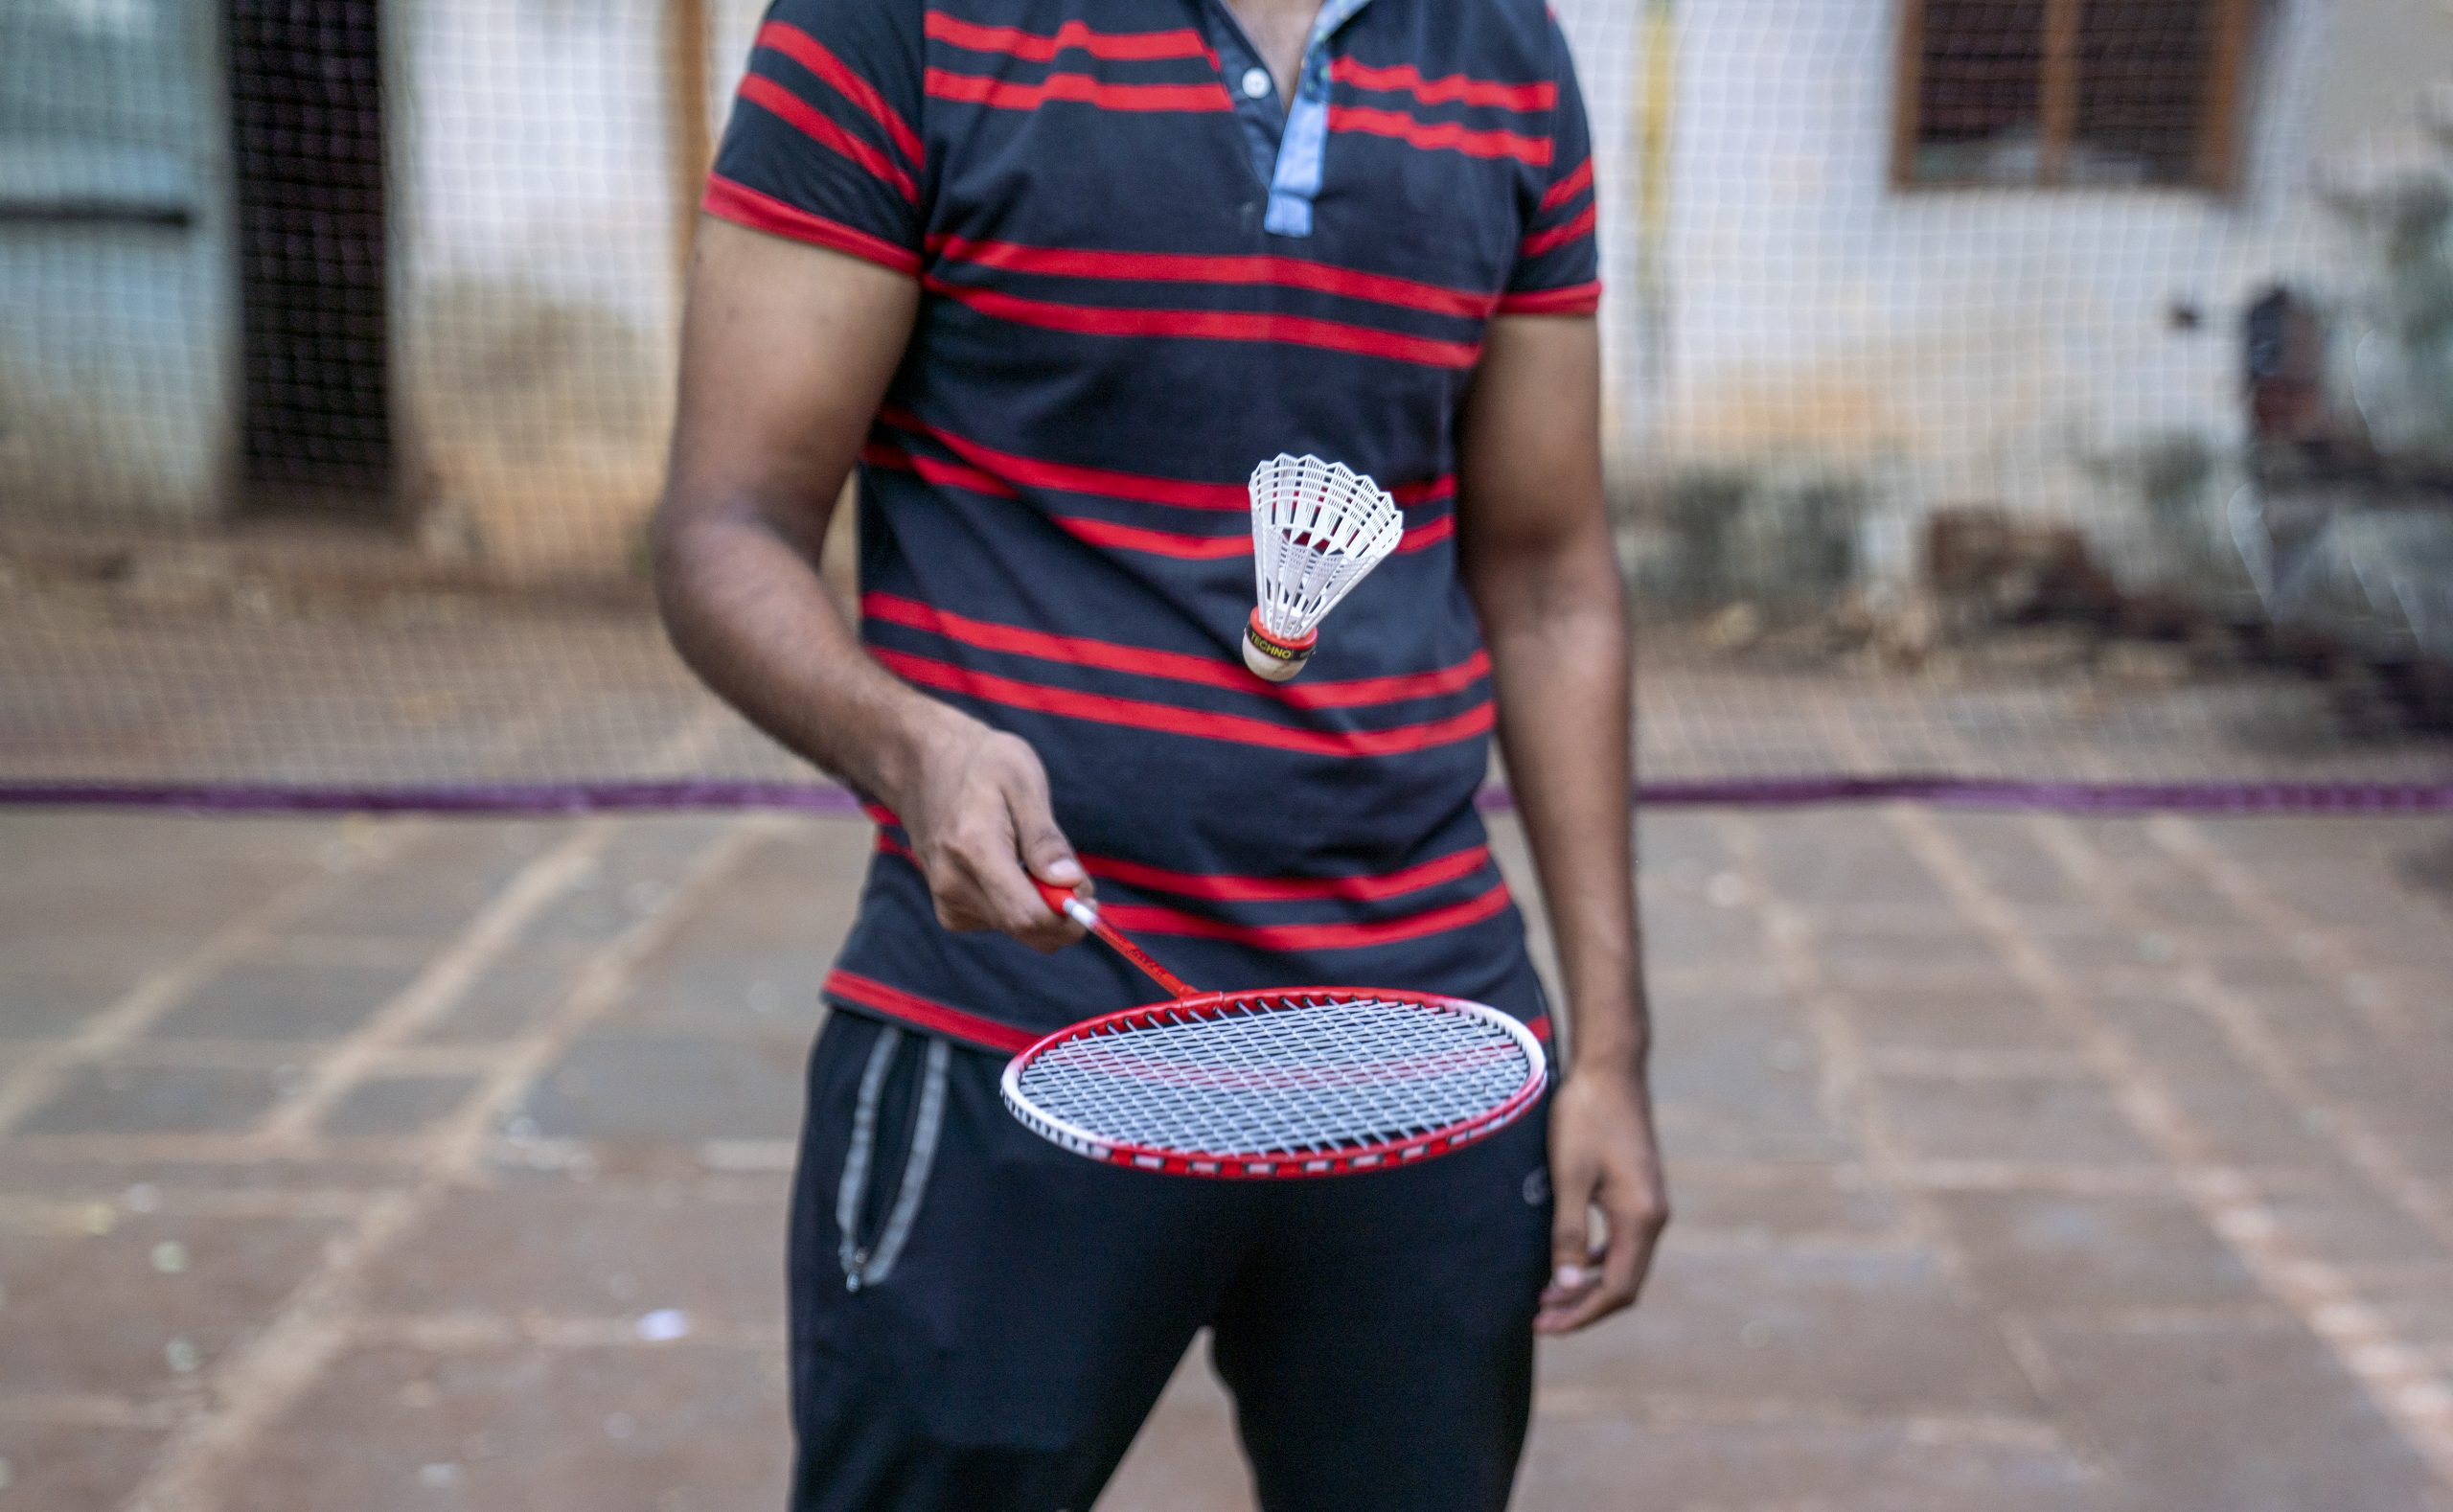 Man holding badminton racket